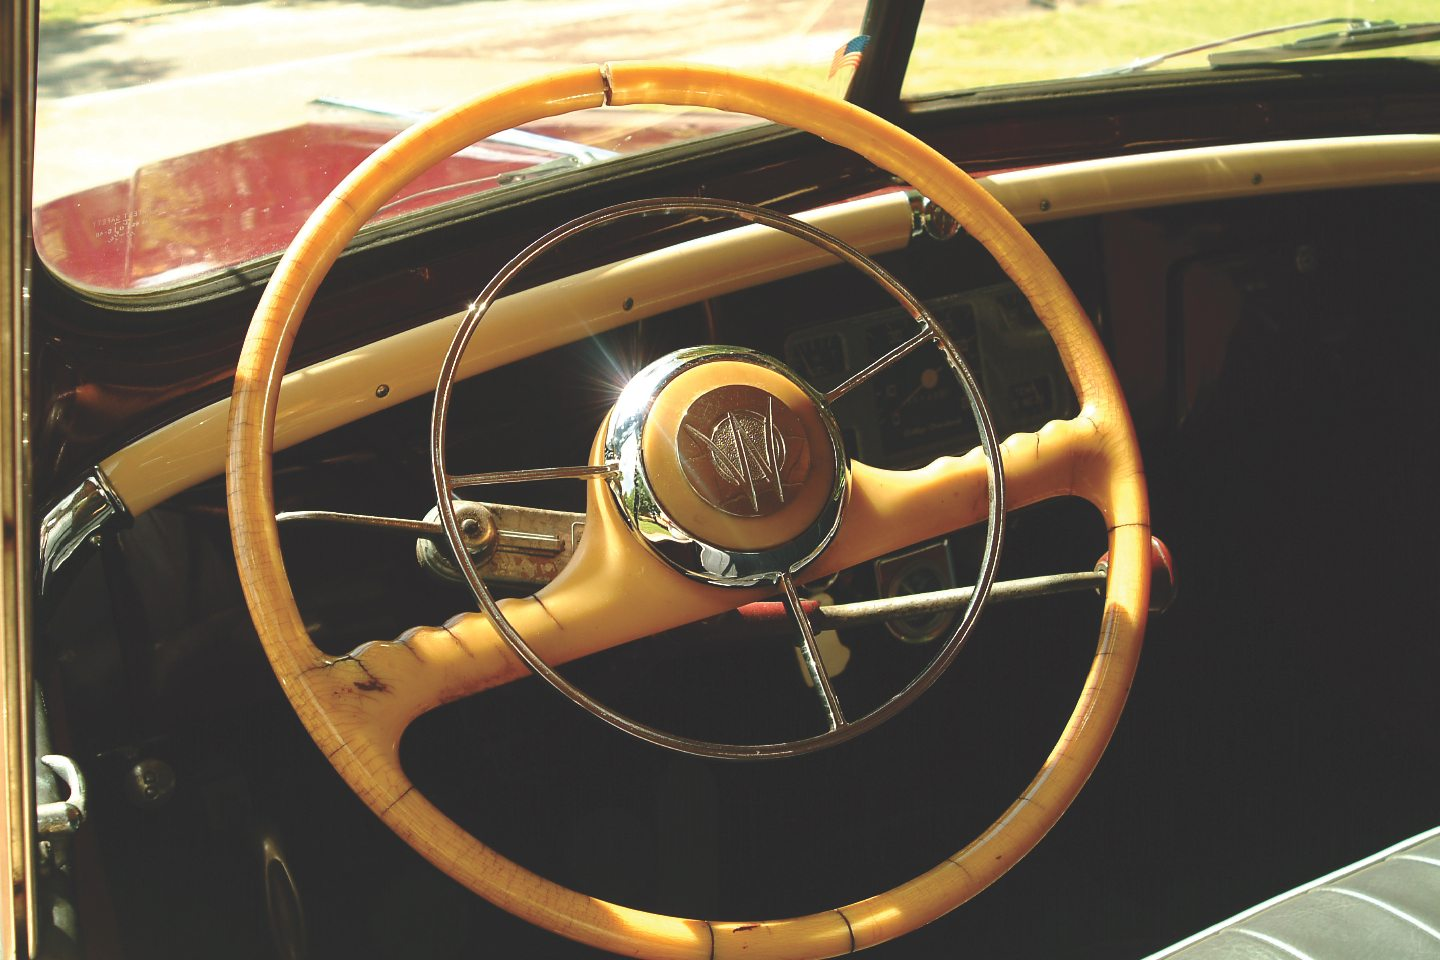 1949 Willys-Overland Jeepster Steering Wheel